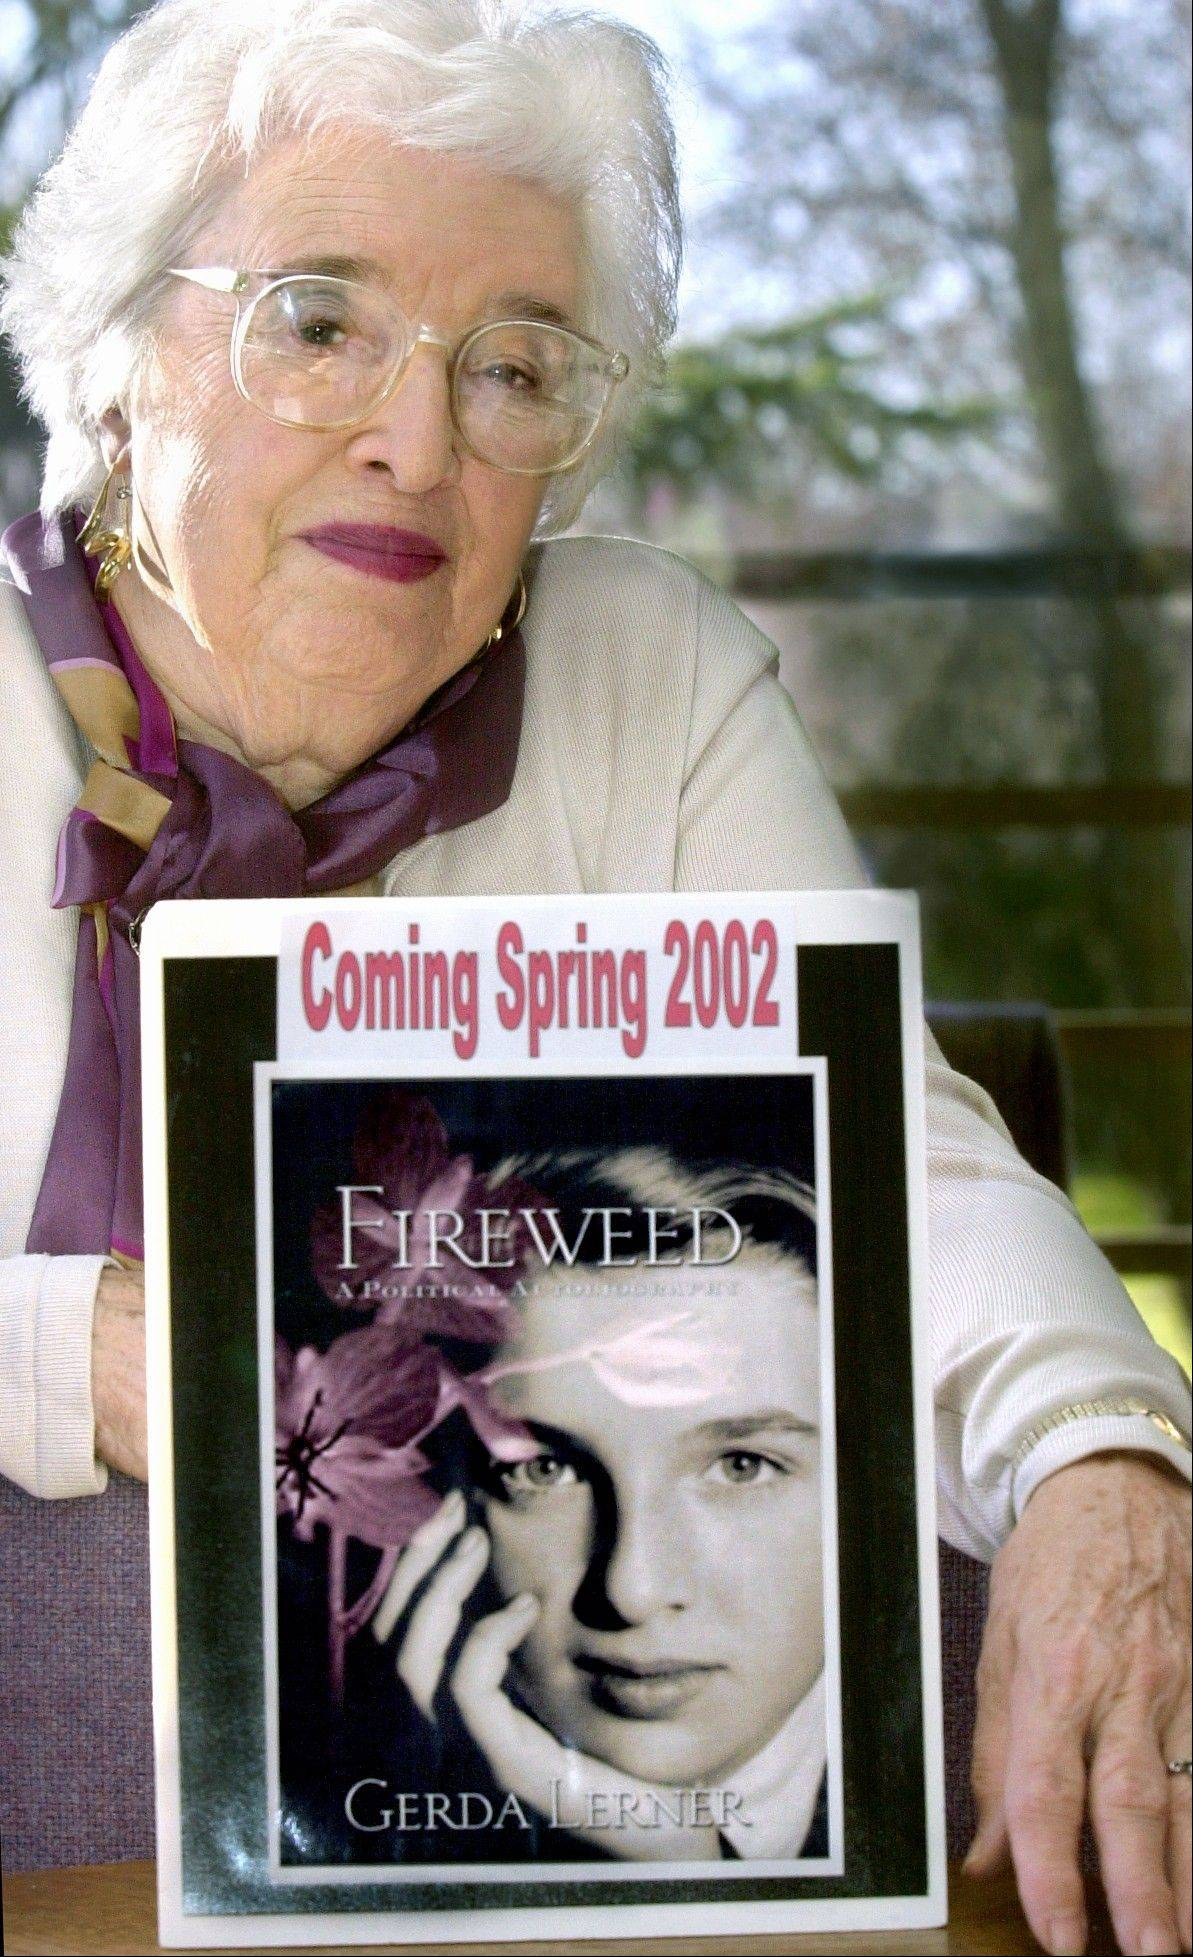 This 2001 photo shows Gerda Lerner, founder of University of Wisconsin-Madison's graduate program in women's history, with an image of her autobiography, Fireweed. Lerner, a founding member of the National Organization for Woman and a pioneer in the field of women's history, has died at an assisted-living facility in Madison. She was 92.